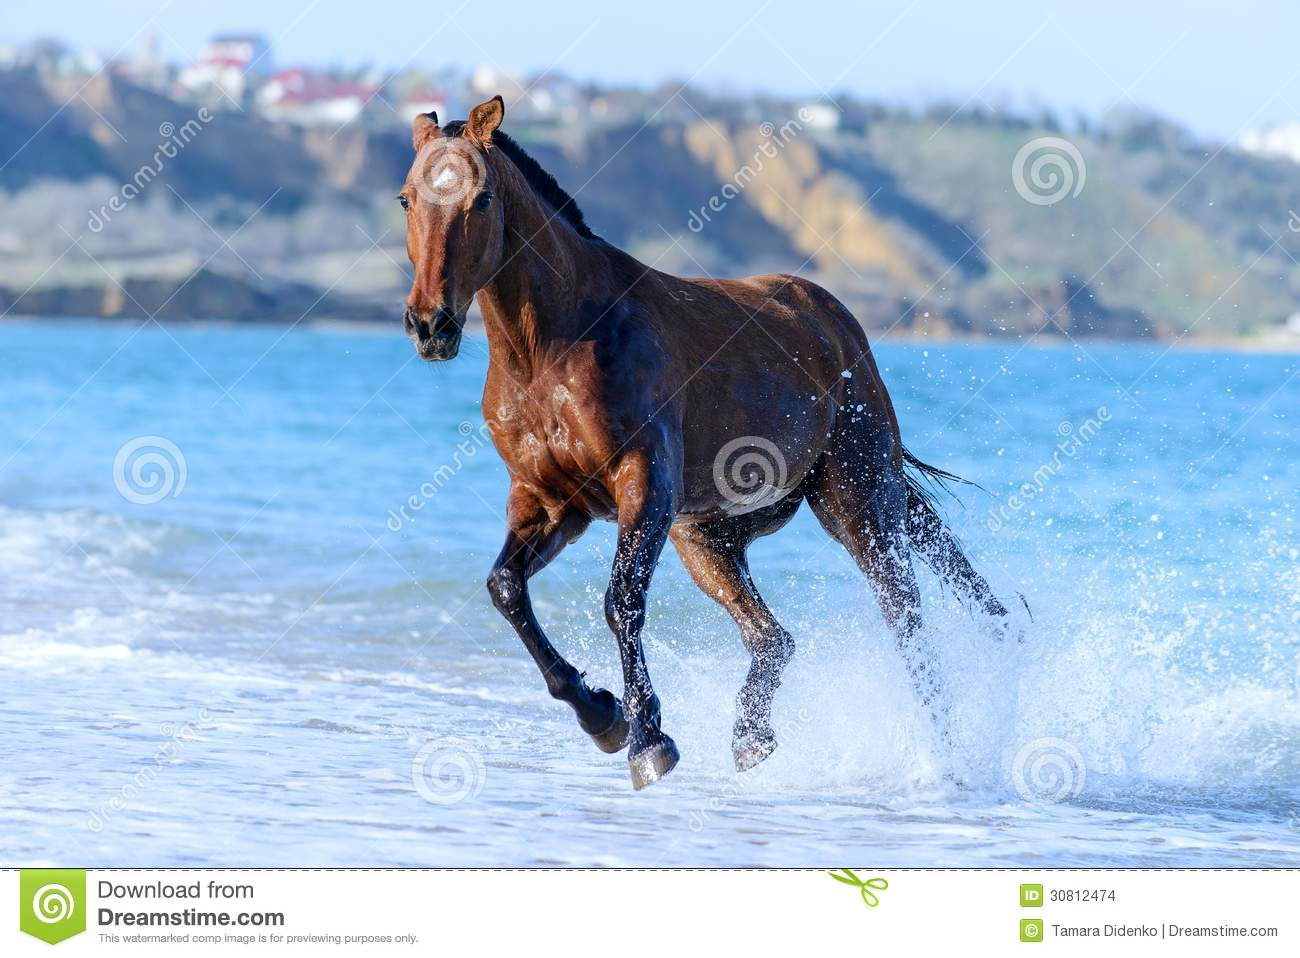 Brown horse running in water